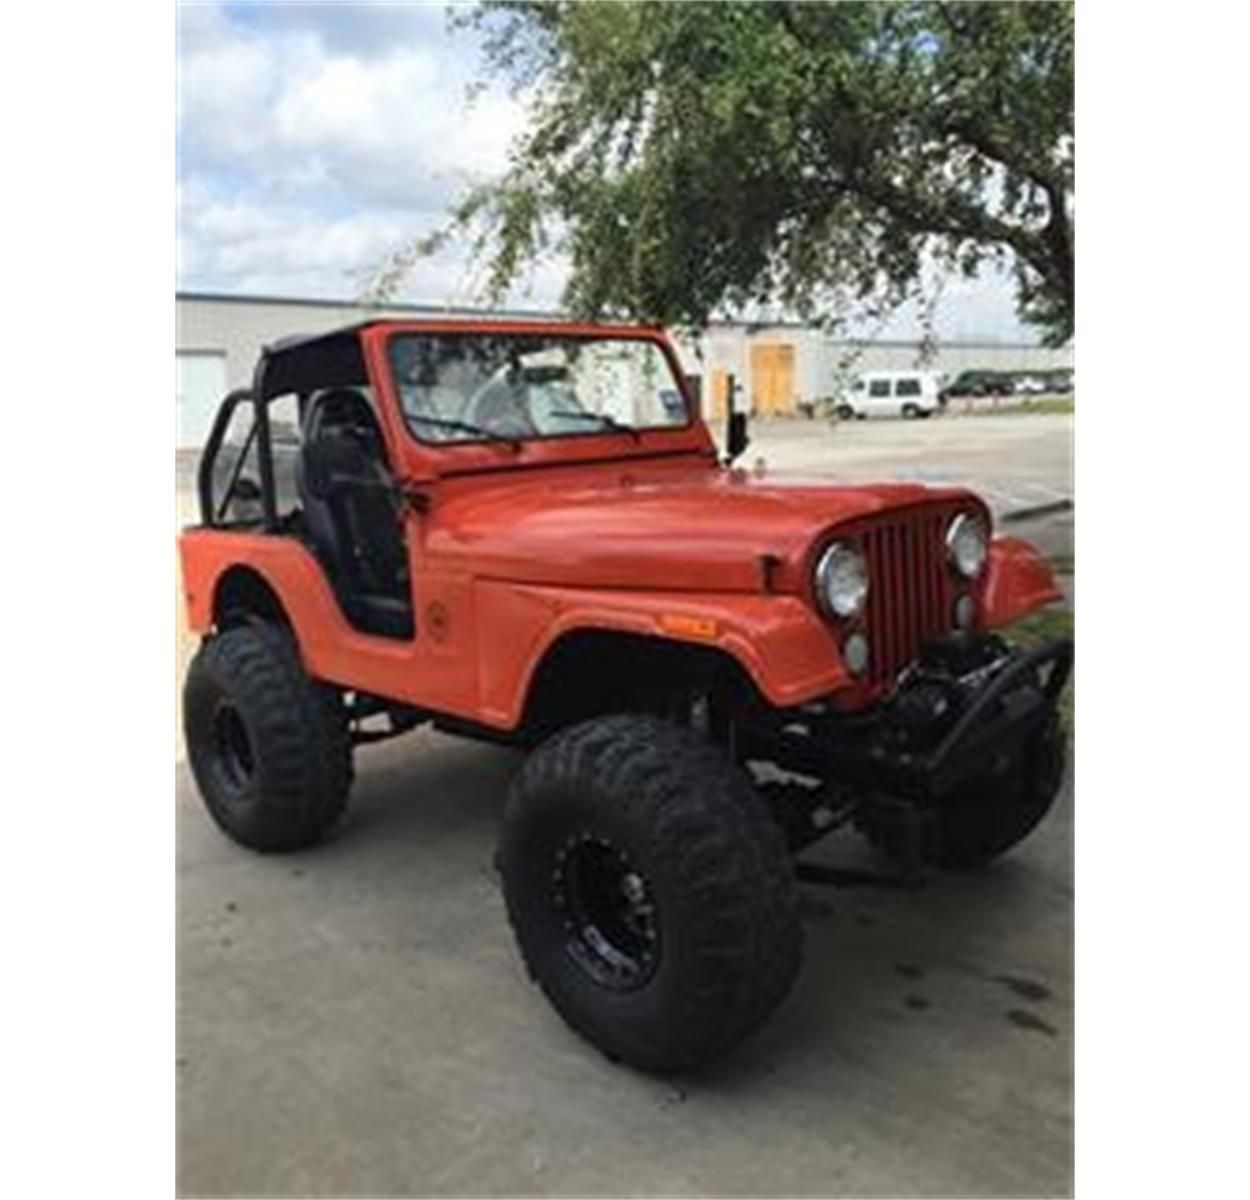 1978 Jeep Cj5 Cc 776944 For Sale In Houston Texas In 2020